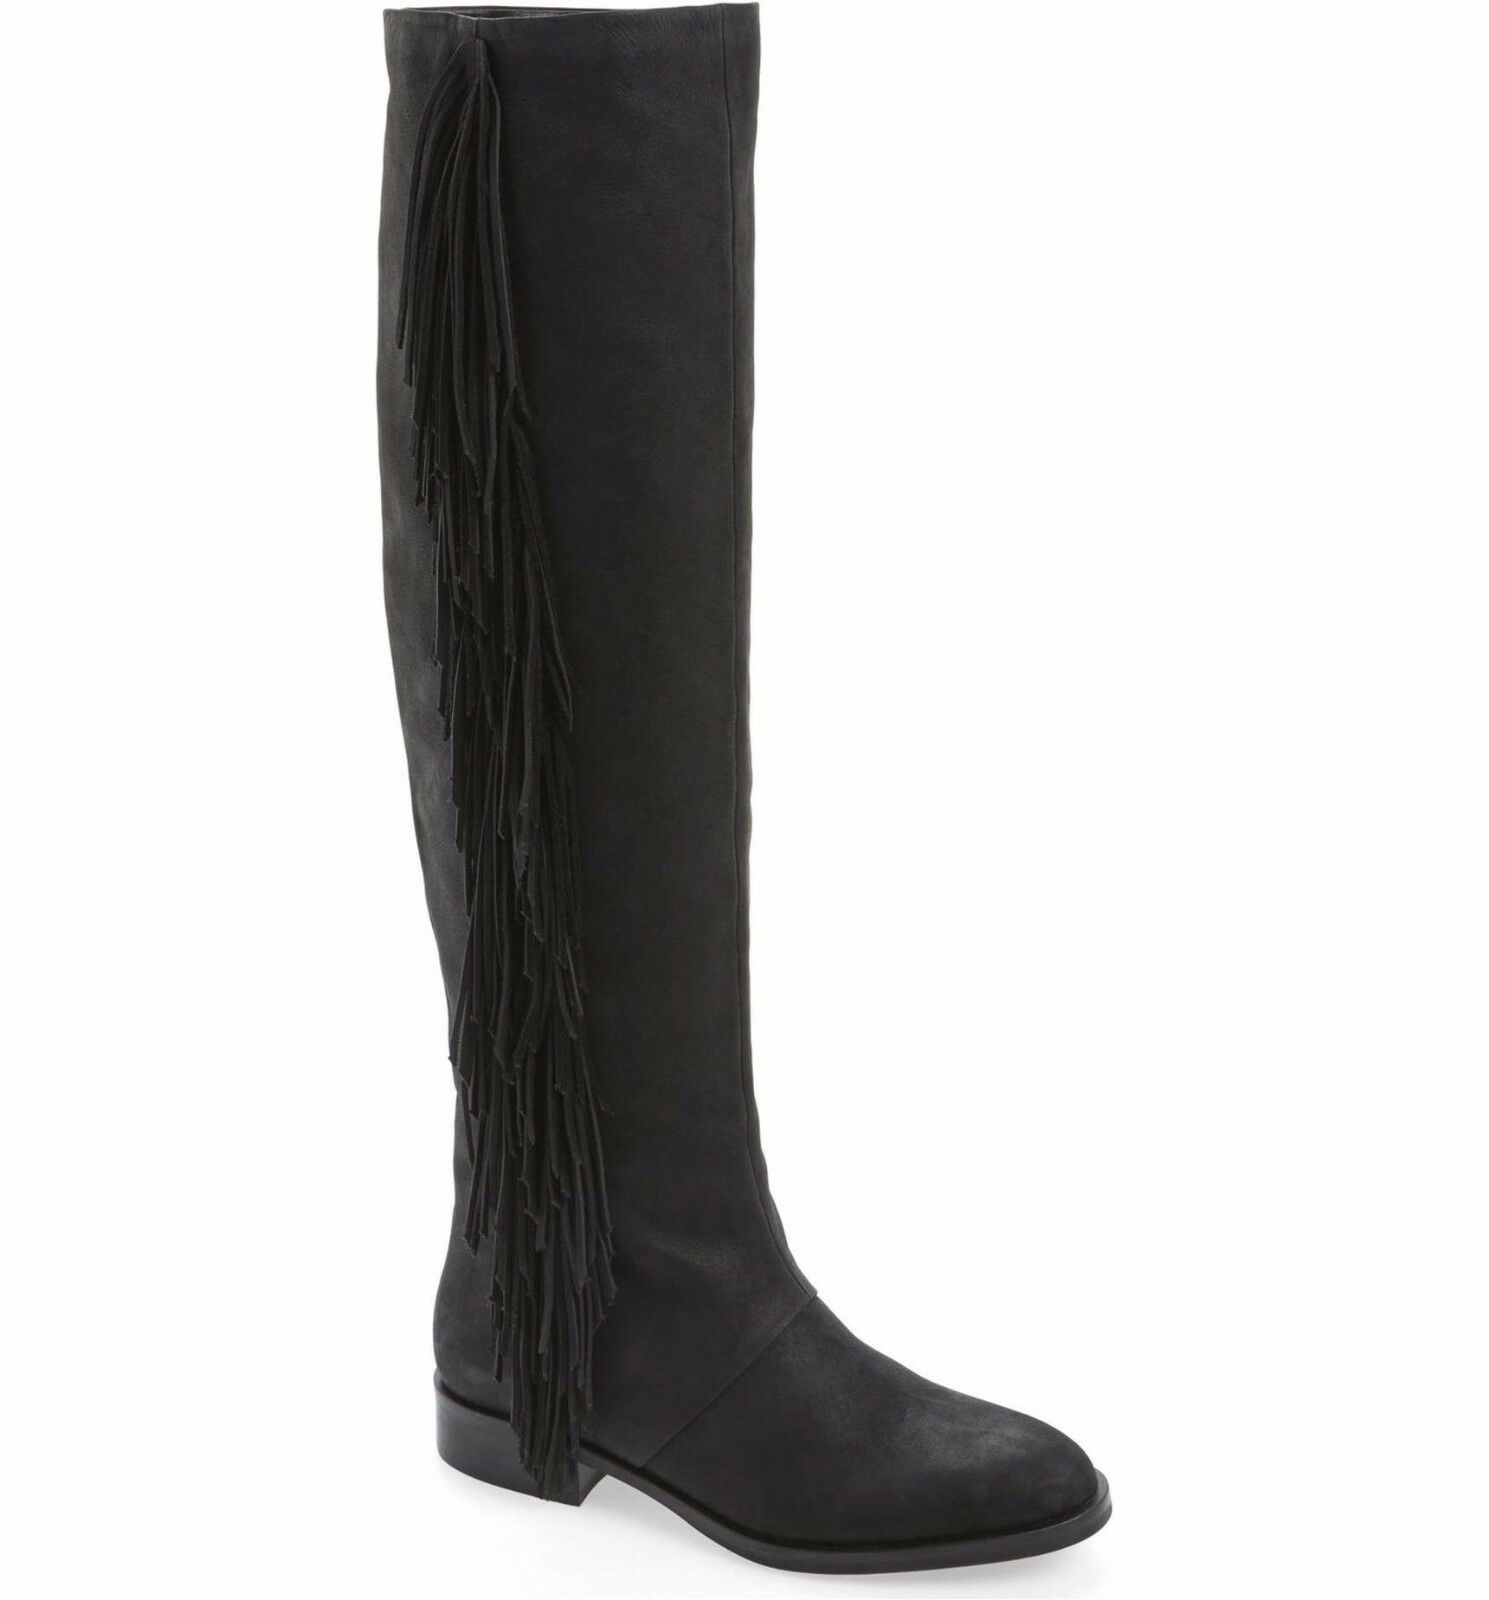 275 SAM EDELMAN New Josephine Tall Tall Tall Fringe Leather Riding Boots Black Size 5 488b61